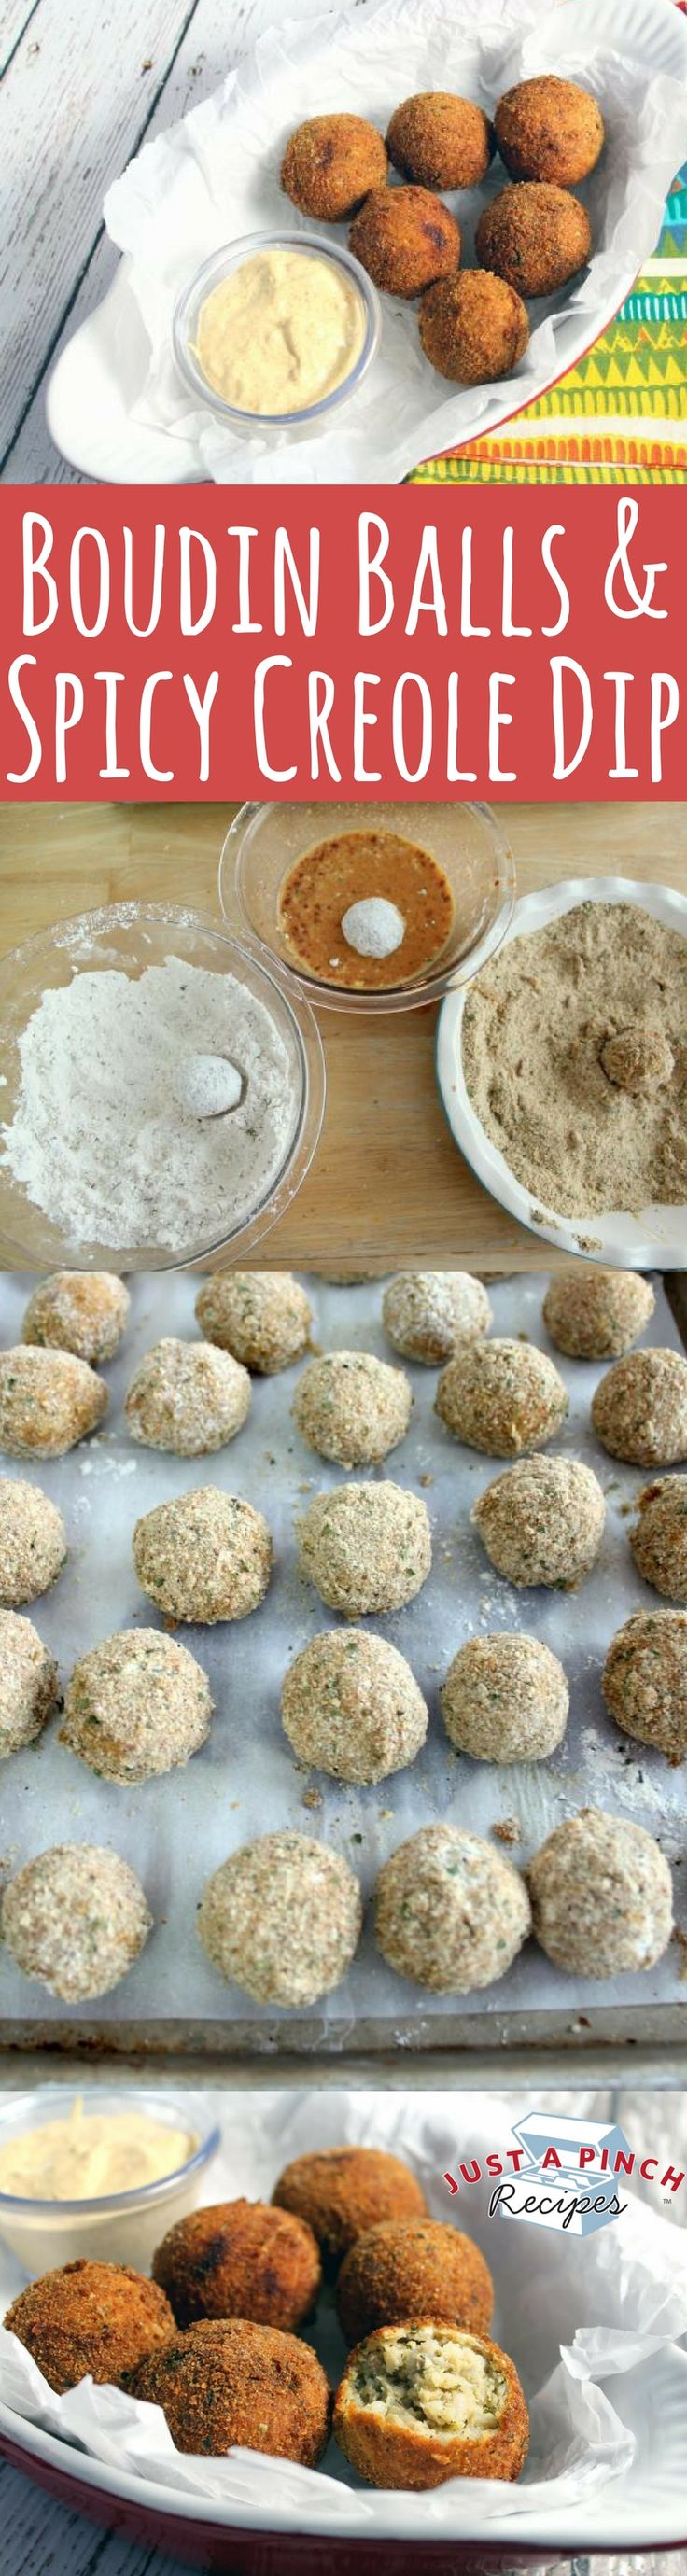 When you bite into one of the boudin balls, the outside has a bit of spice with a crispy texture. The inside is soft with a savory pork flavor and a hint of garlic. The dipping sauce is tart and adds quite a kick of spice.